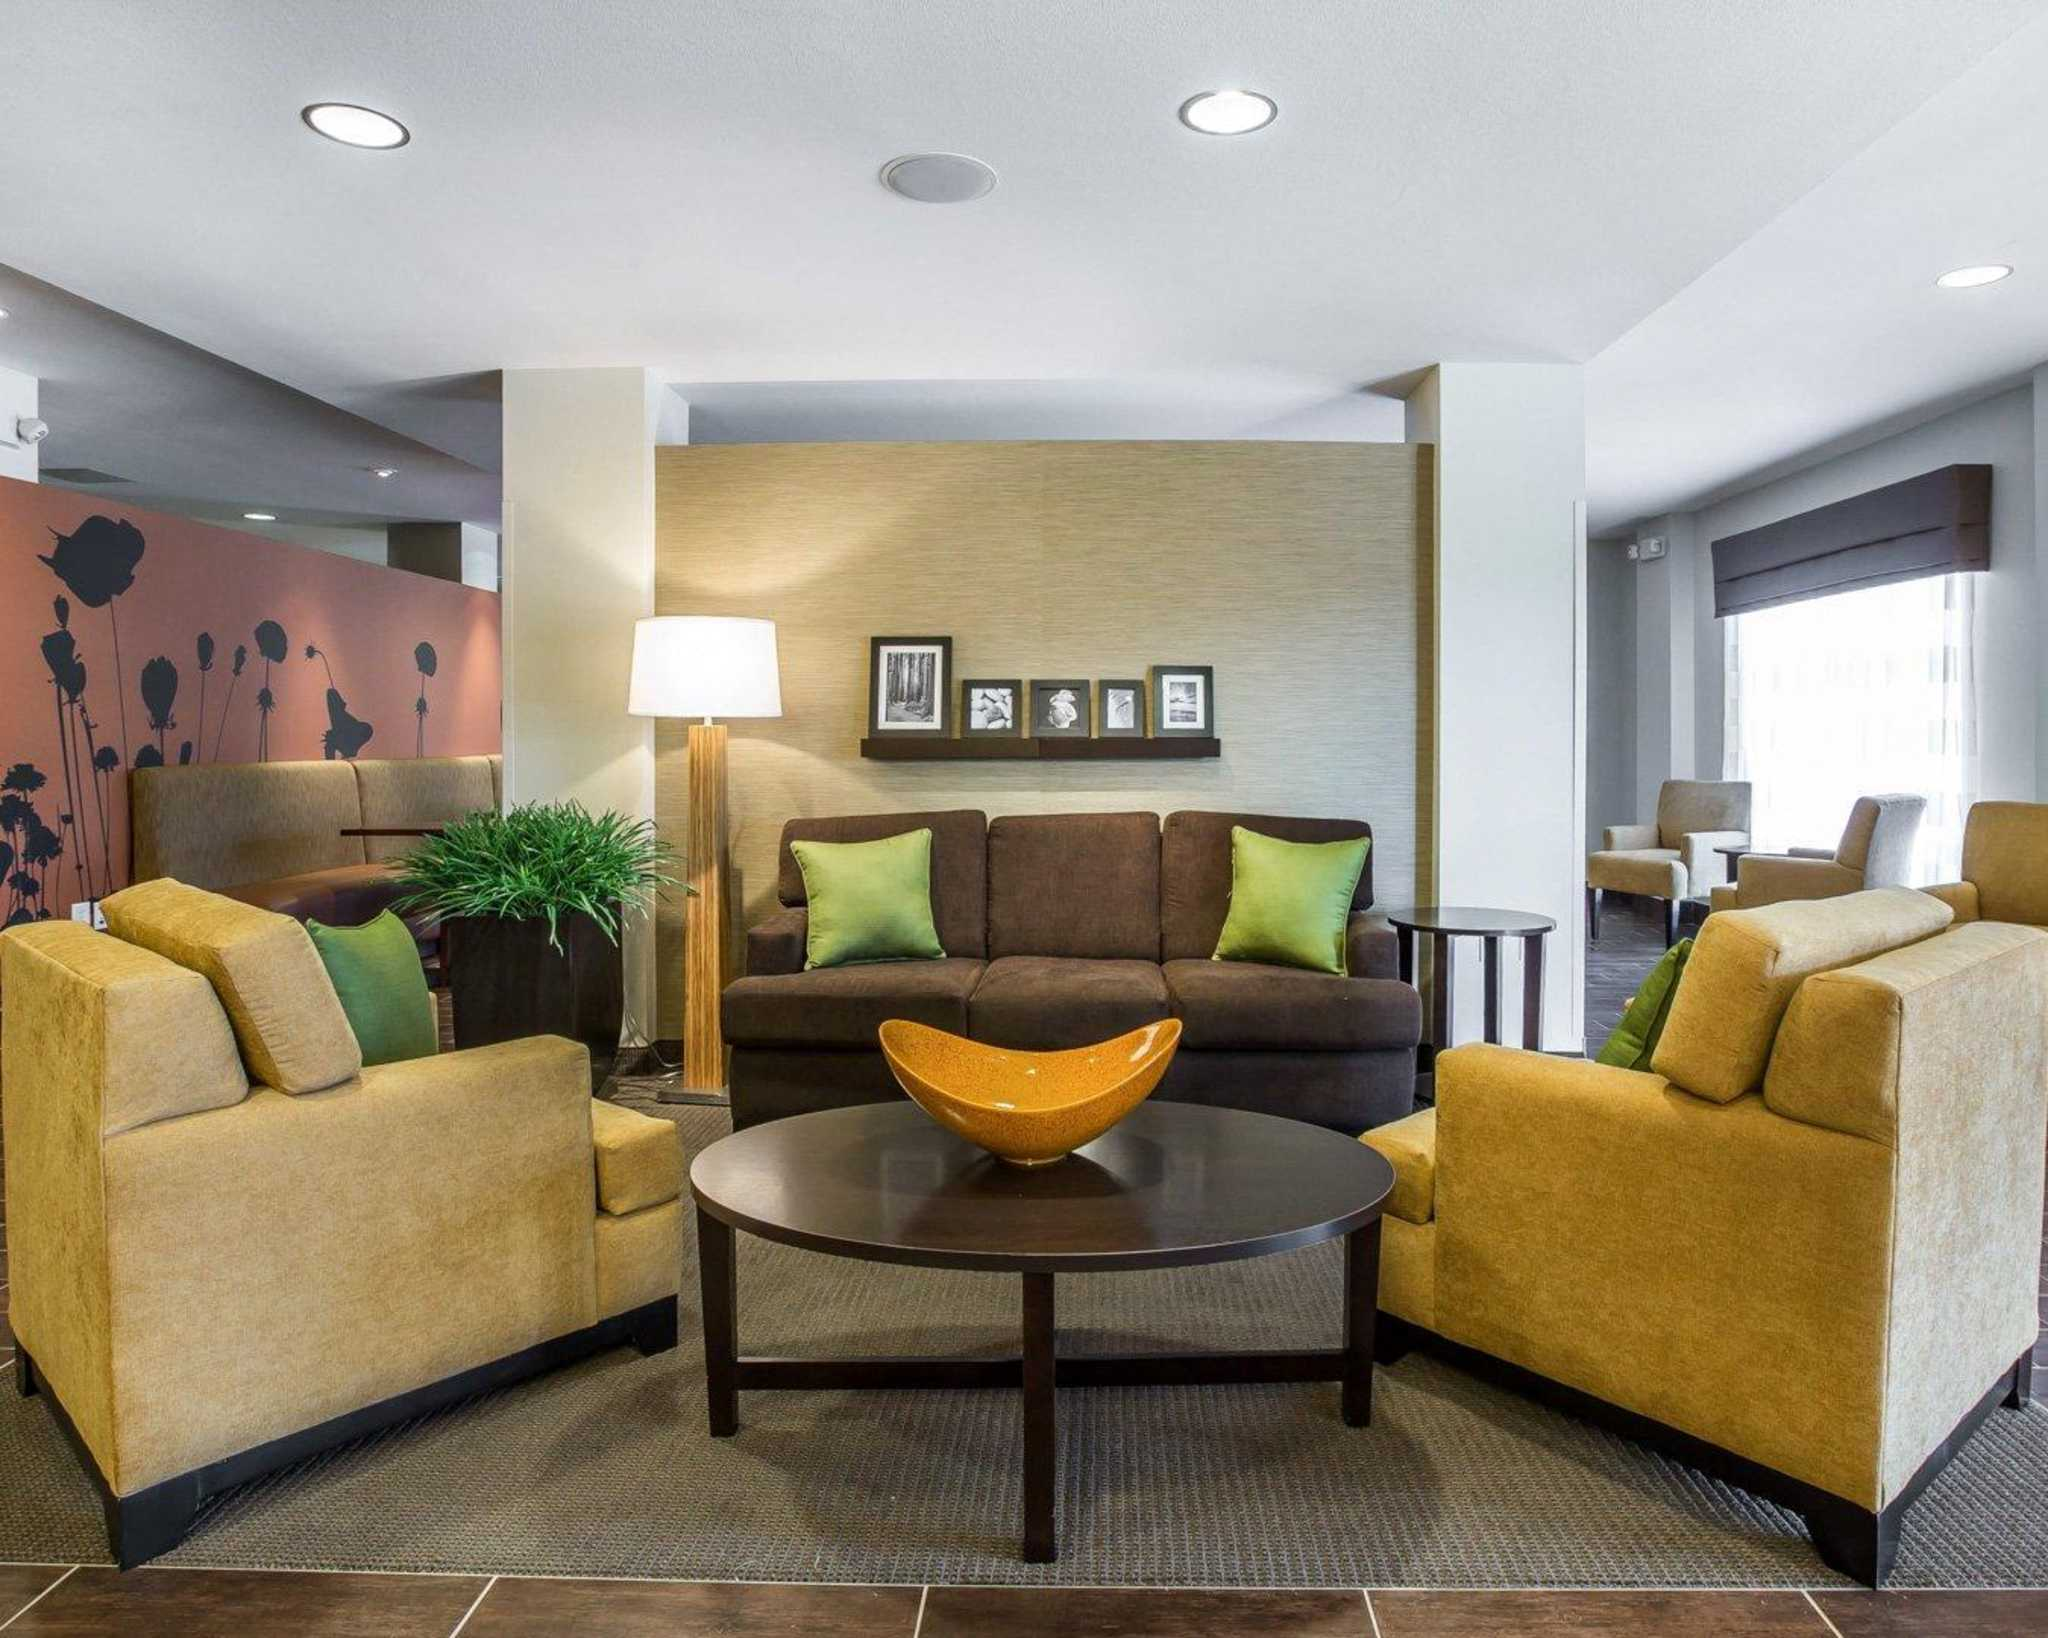 MainStay Suites Cartersville - Emerson Lake Point image 5